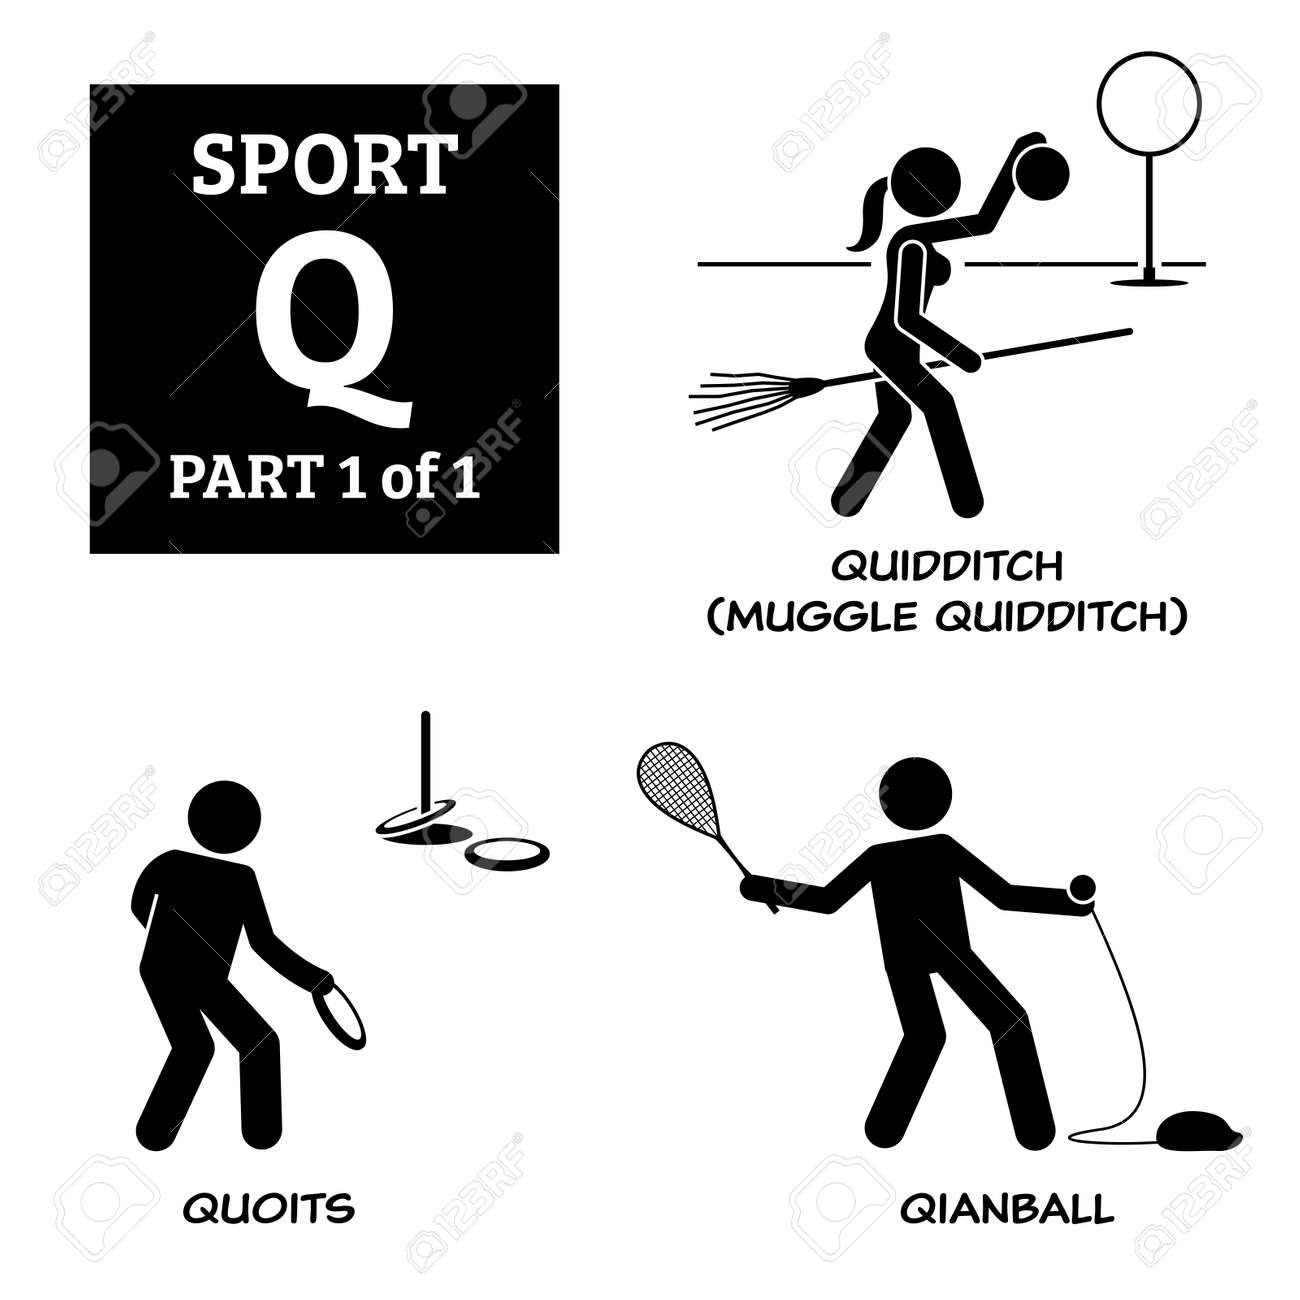 Sport games alphabet Q vector icons pictogram. Quidditch, muggle quidditch, quoits, and qianball. - 172367789